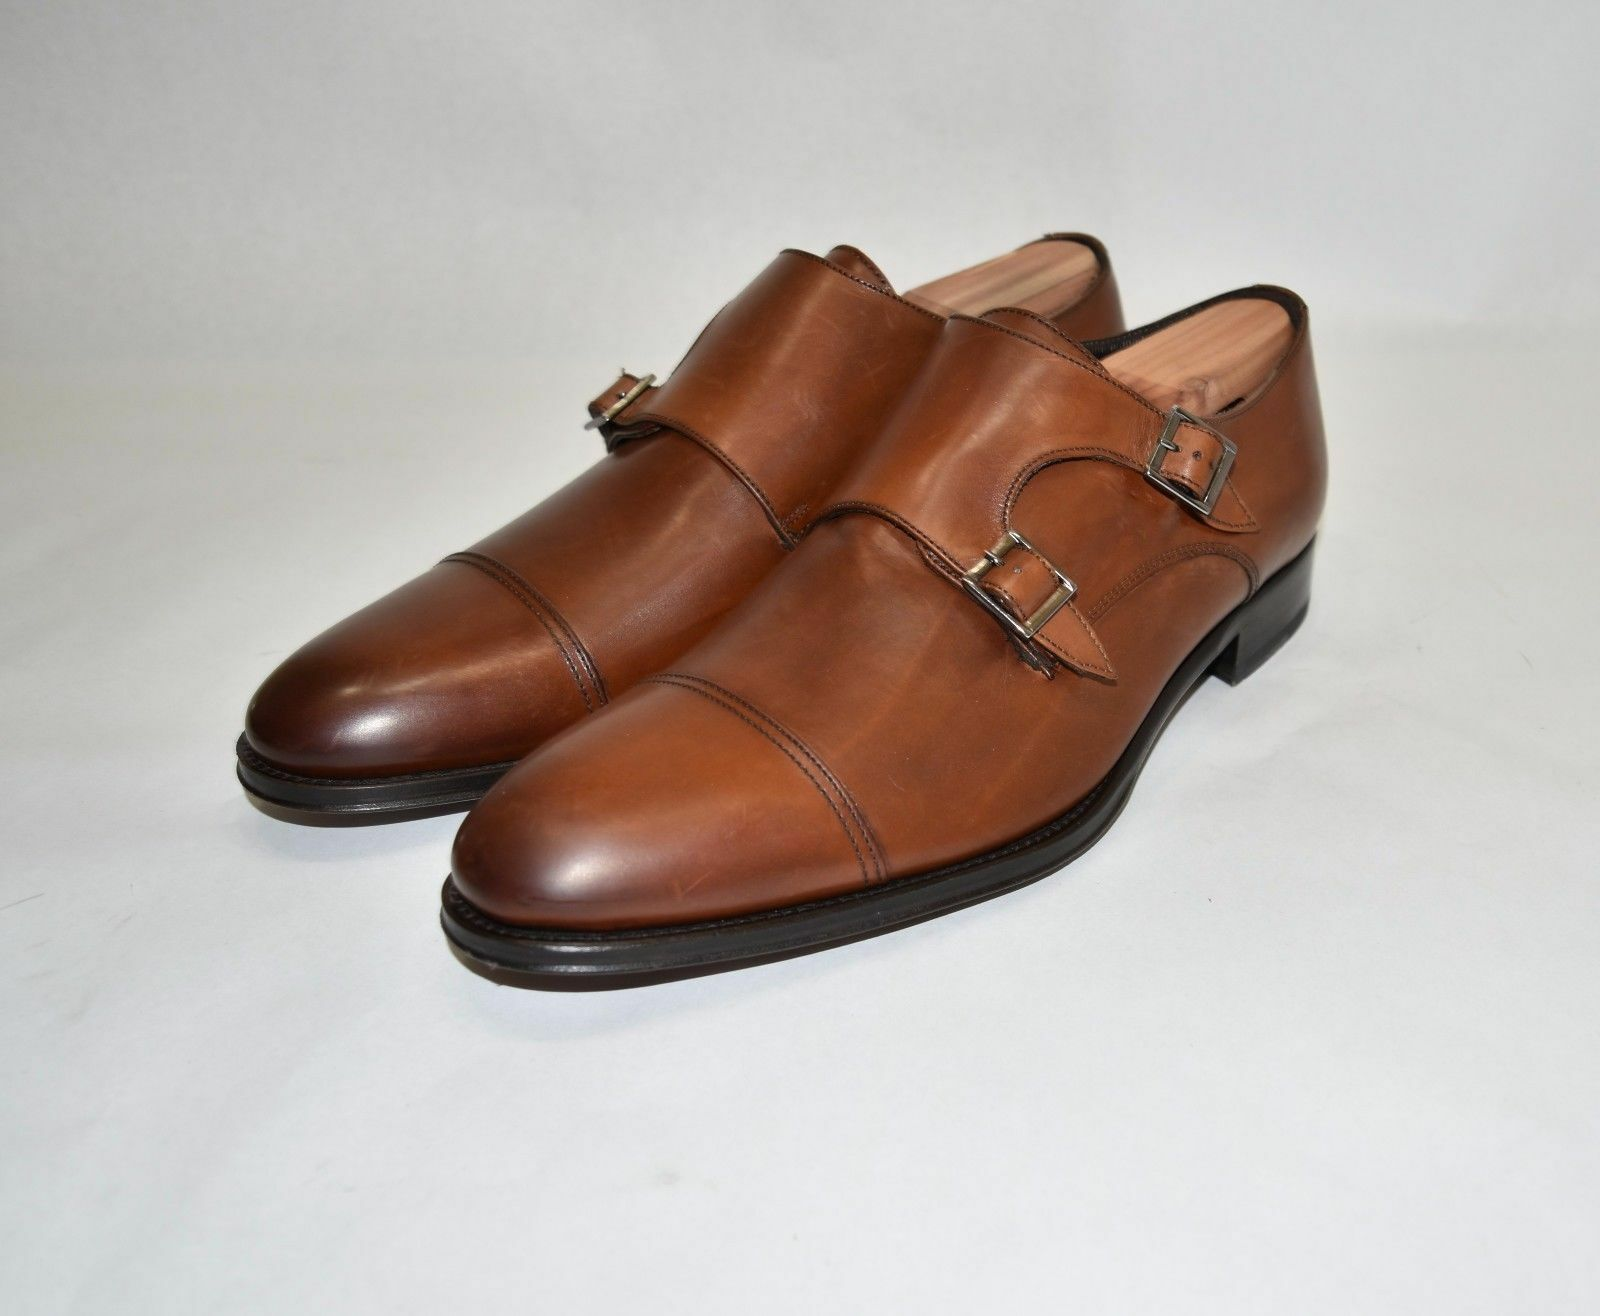 New   To Boot New York 'Medford' Double Monk Strap 11 Cognac Brown Men's   G